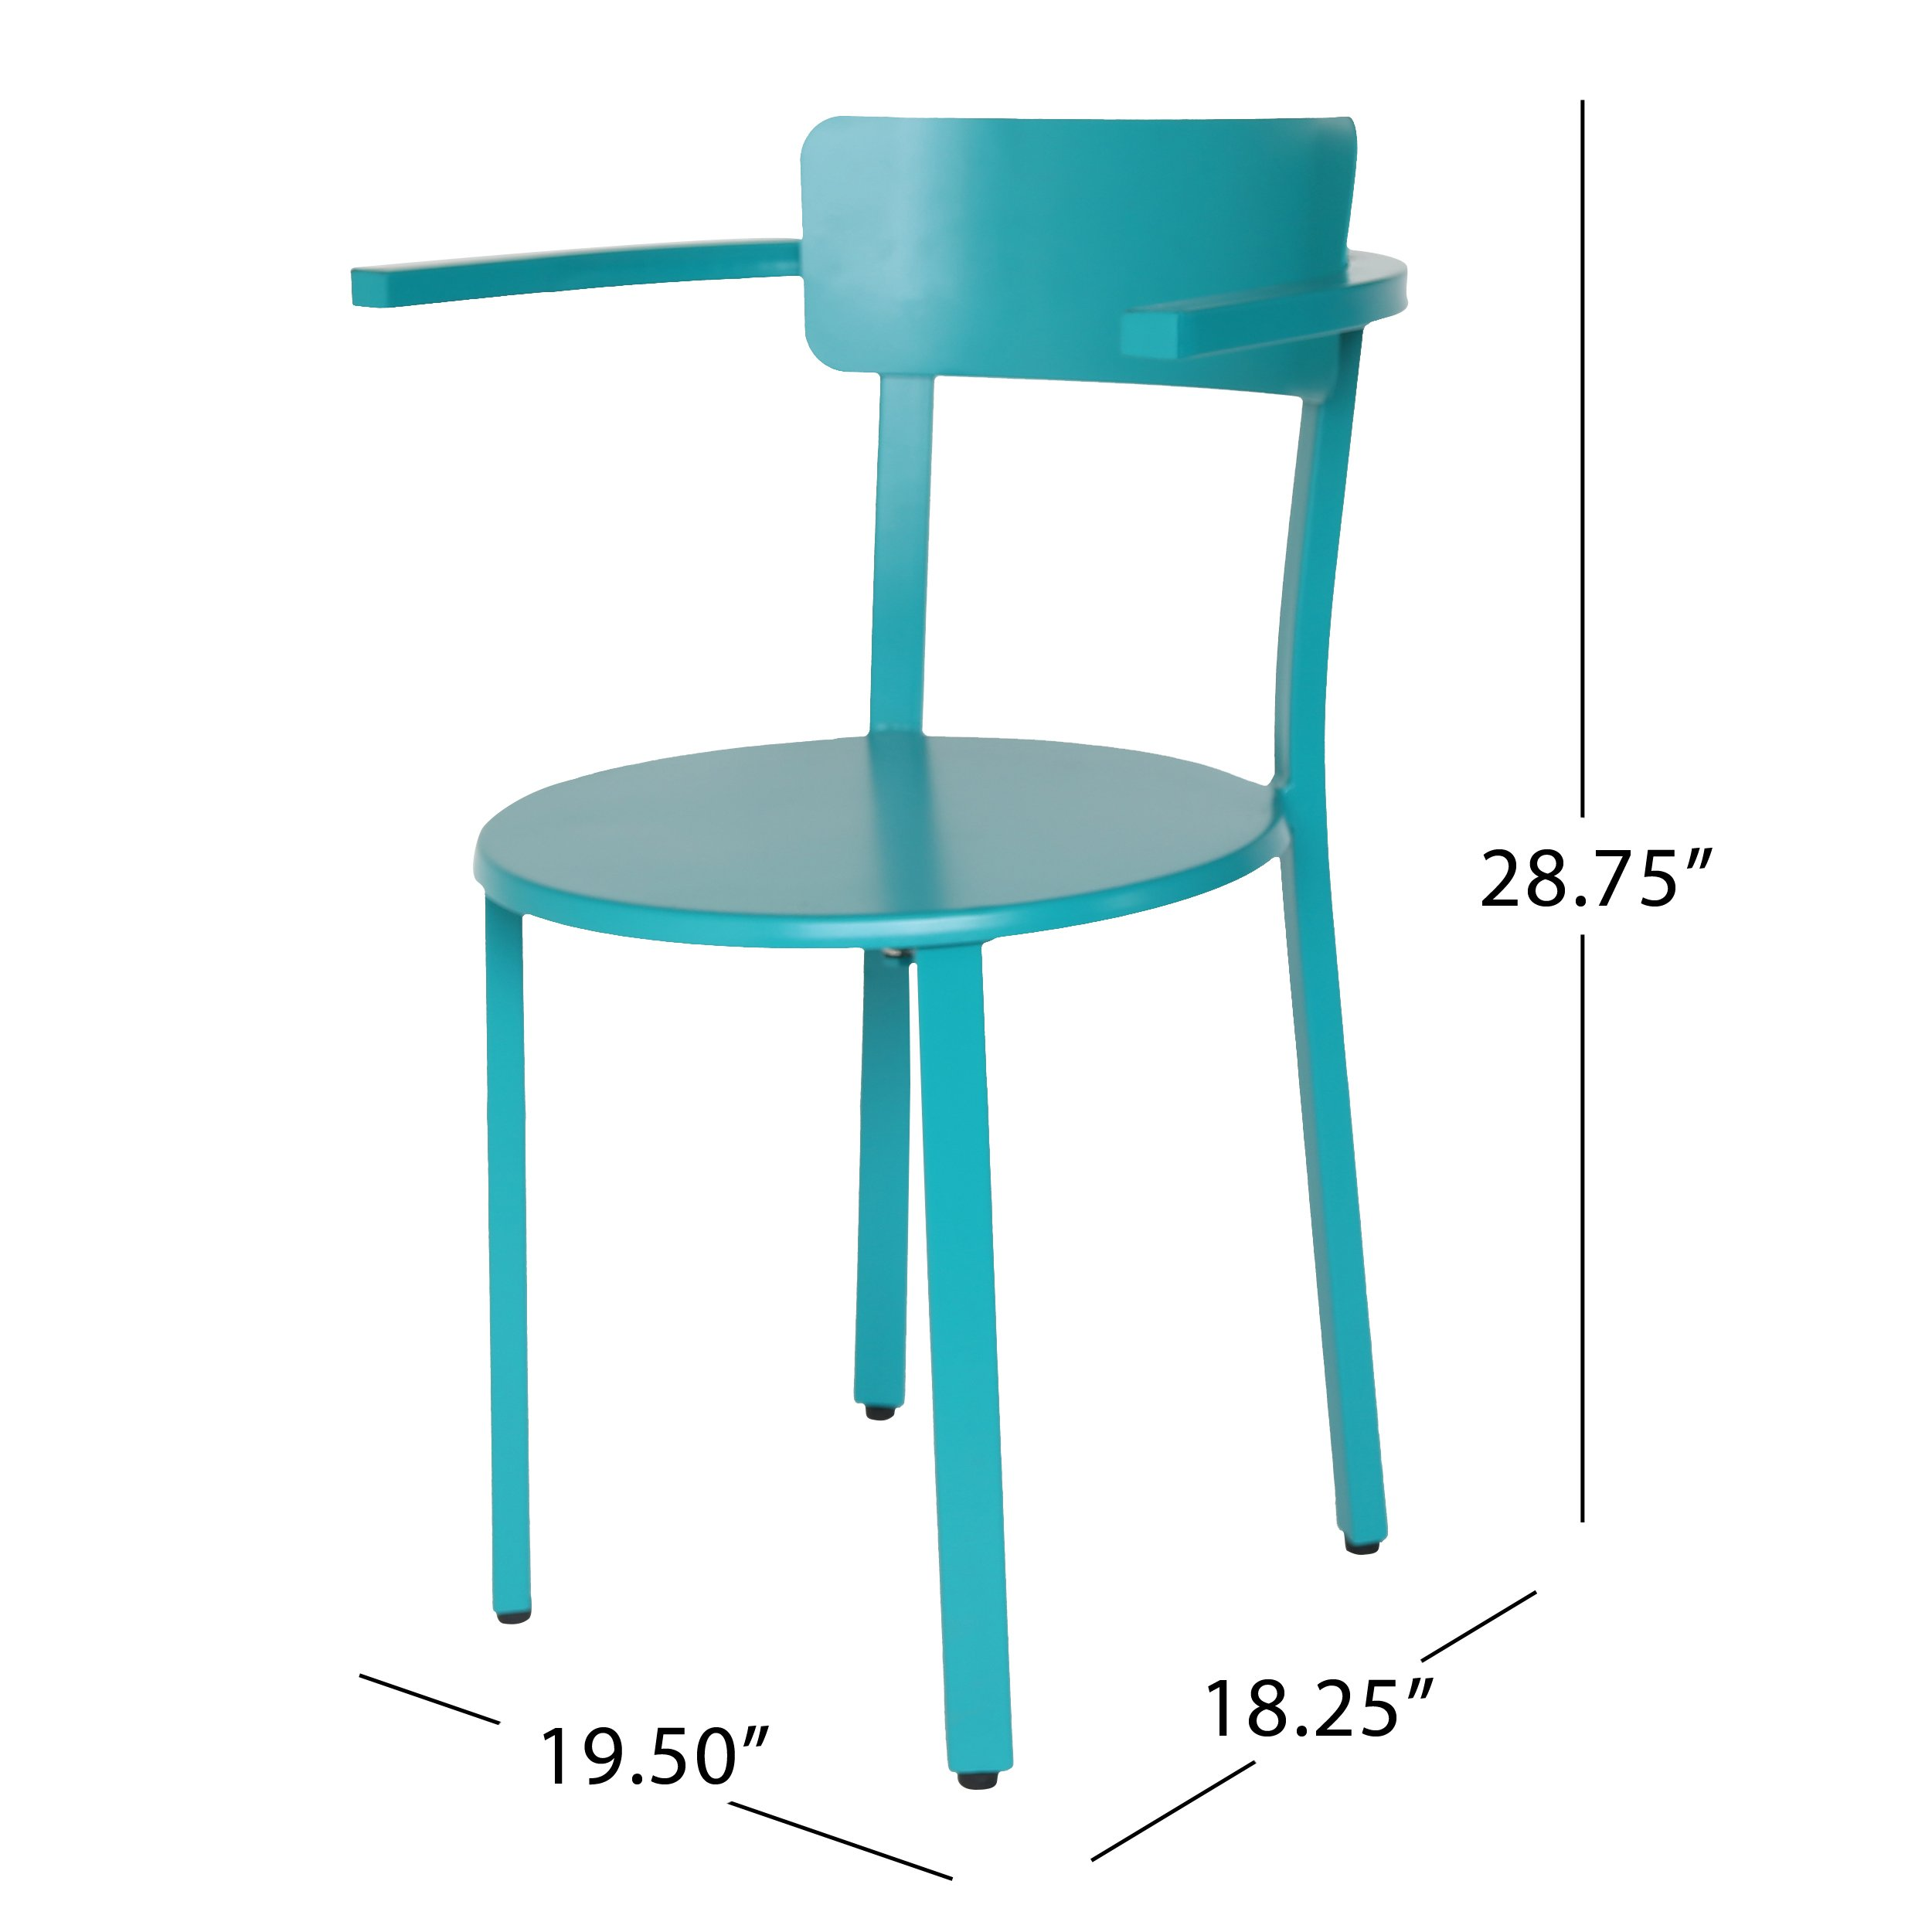 Great Deal Furniture Kate Outdoor Iron Bistro Set, Matte Teal by Great Deal Furniture (Image #9)